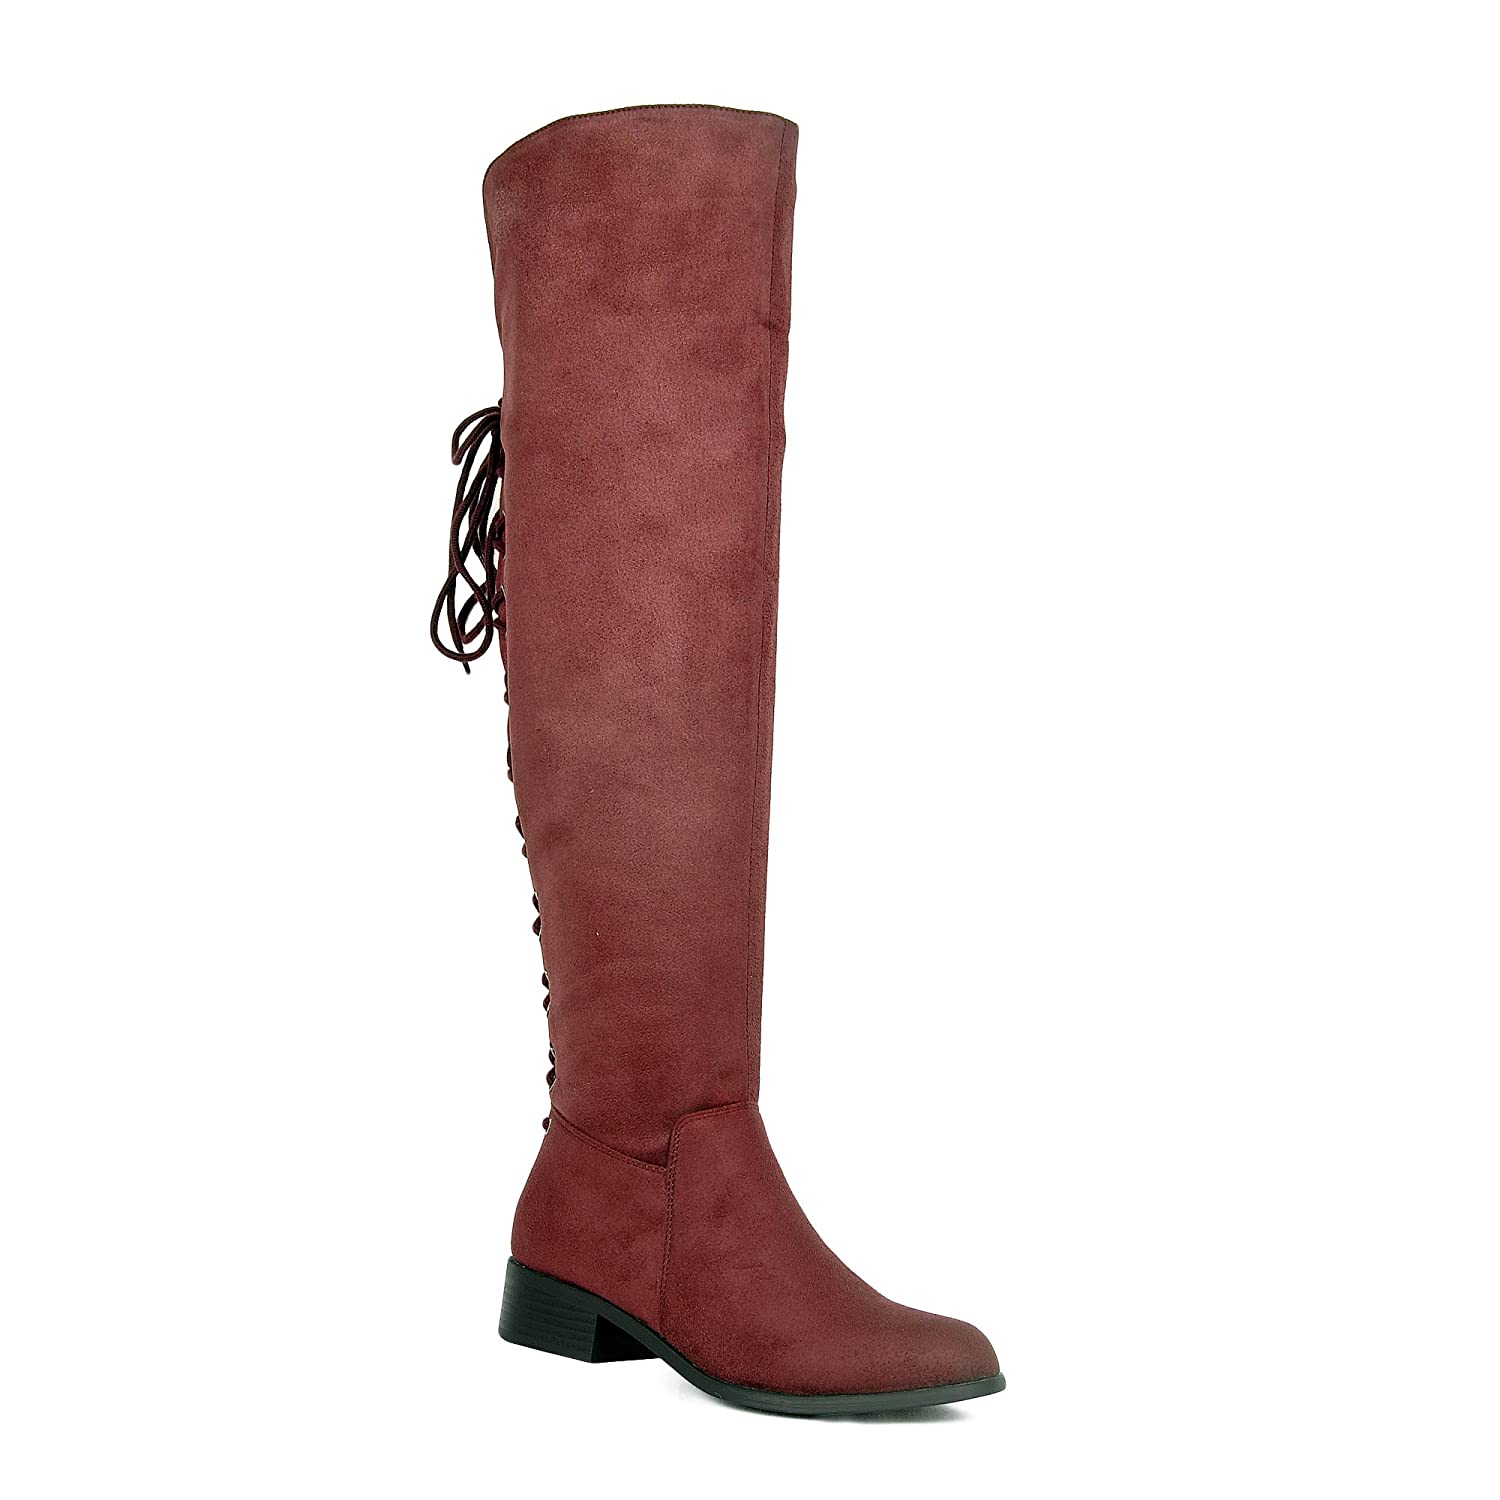 Women's Burgundy Faux Suede OTK Back Corset Lace-up Fold Over Cuff Flat Heel Boots - DeluxeAdultCostumes.com